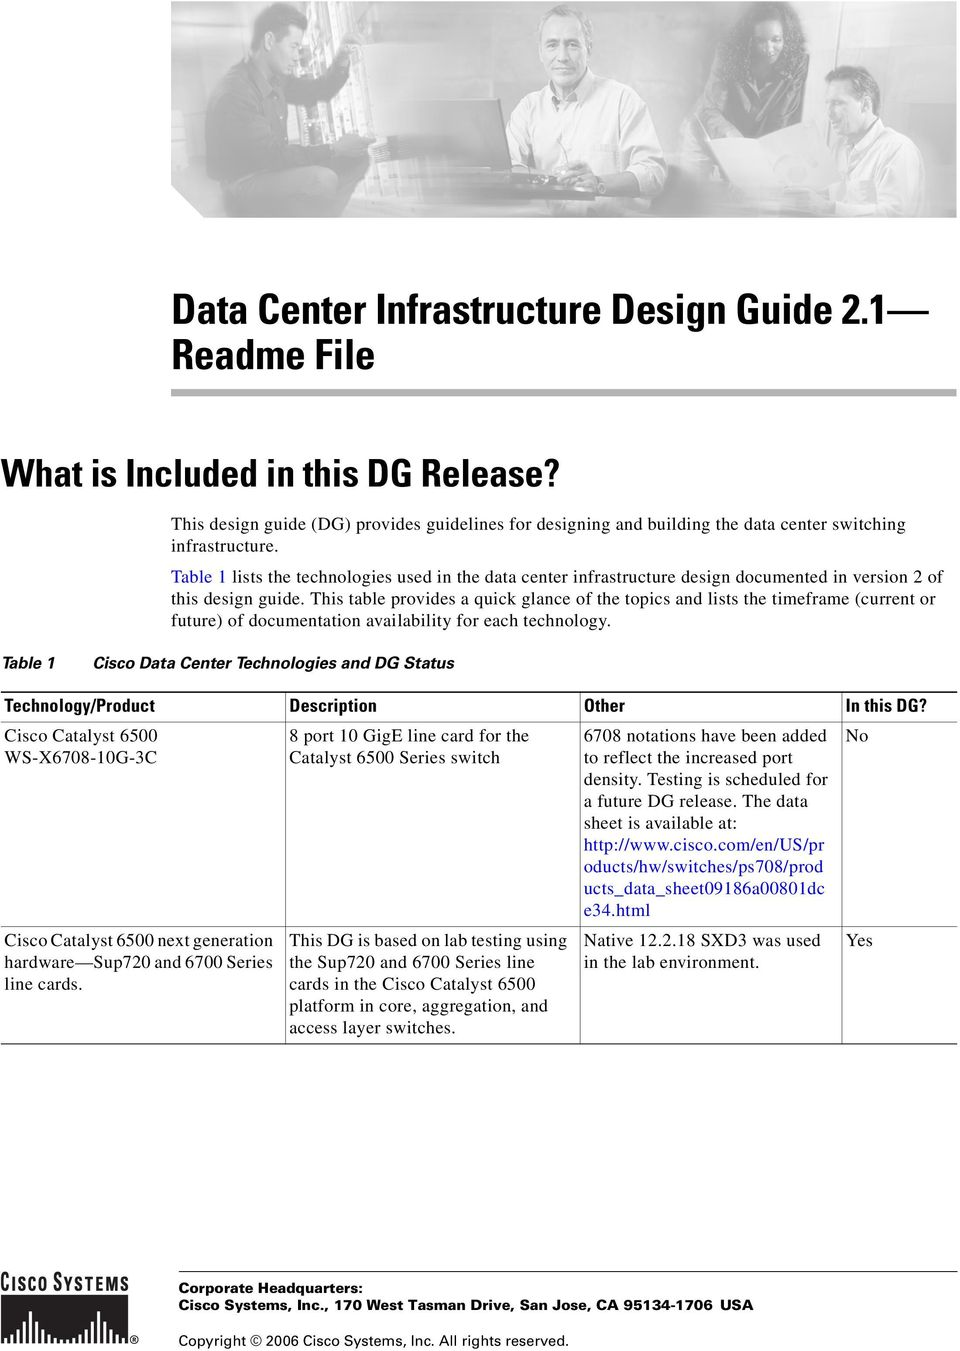 Table 1 lists the technologies used in the data center infrastructure design documented in version 2 of this design guide.